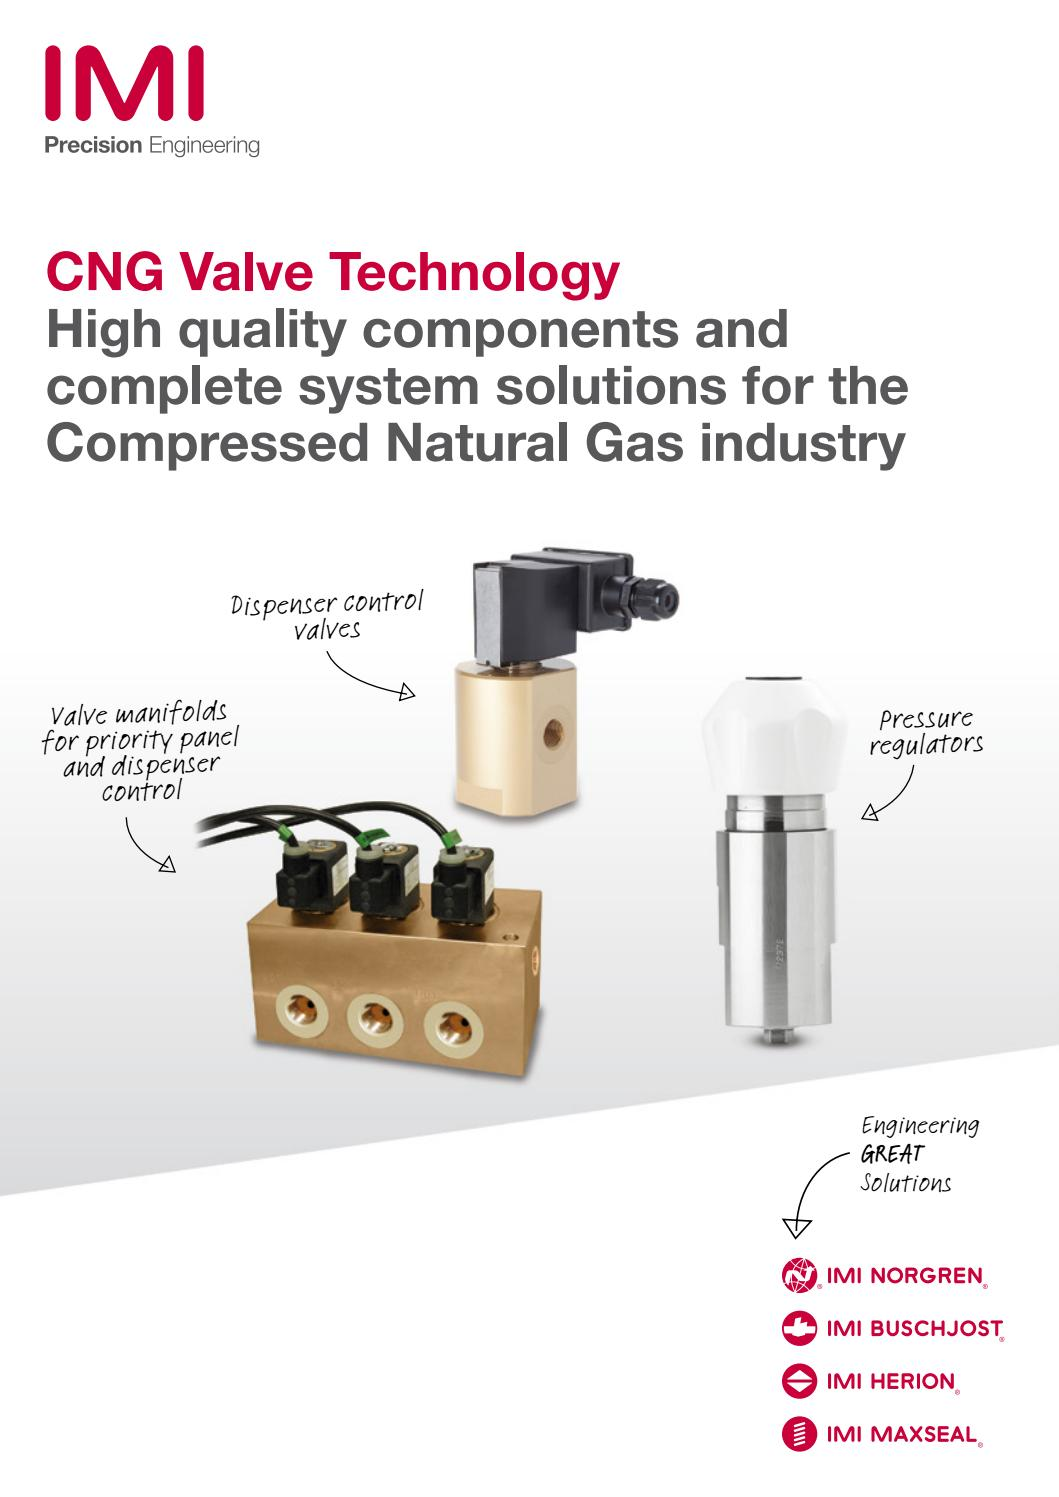 Cng Valve Technology By Imi Precision Engineering Issuu Transmitter Fm 45w With